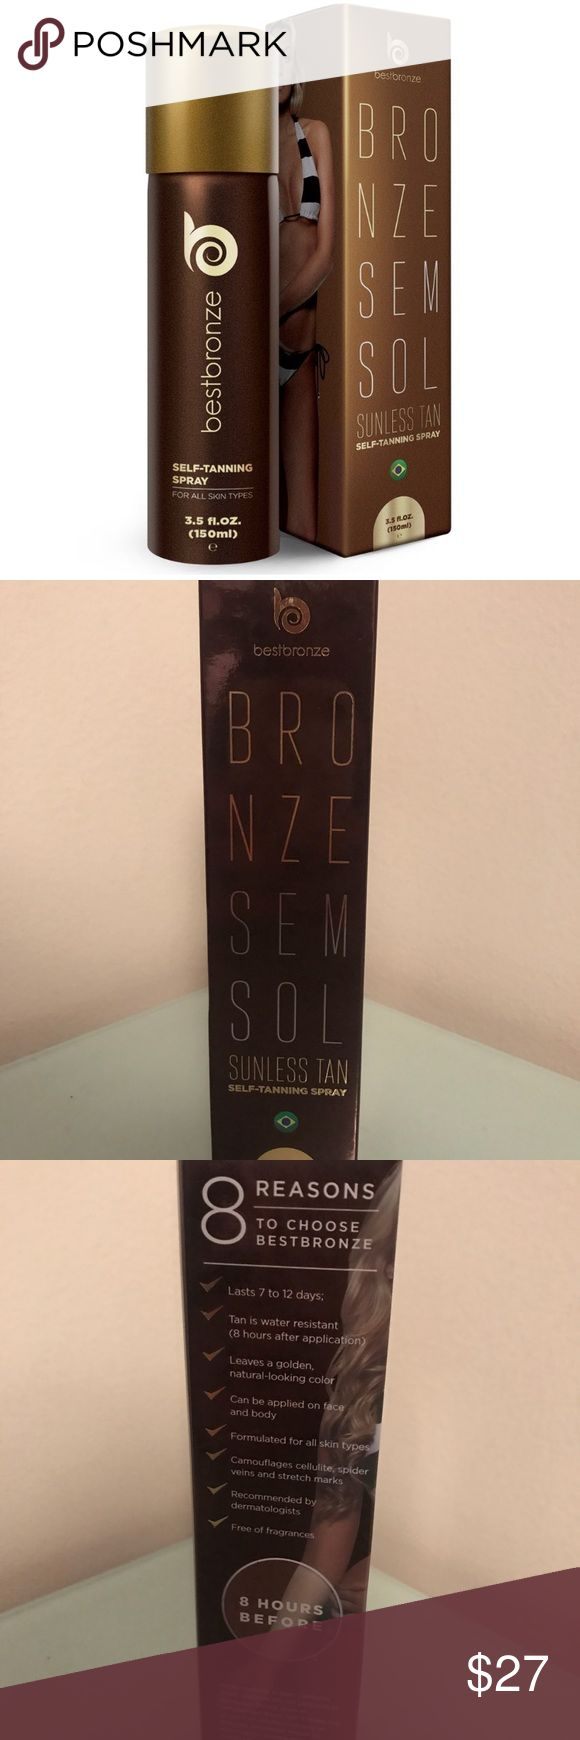 NWOT Best bronze bronze sem sol self tanning spray Hi all- selling this brand new and unopened self tanning spray. Please see below for an elaborate description from the site:  Best Bronze is voted by Glamour Brazil the #1 Self-Tanner, and now it's available in the United States.This product is a result of German and Swiss cosmetic technology combined with the latest skincare innovations. Suitable for all skin types. Use on body and face, enjoy perfect tanning spray performance with no…